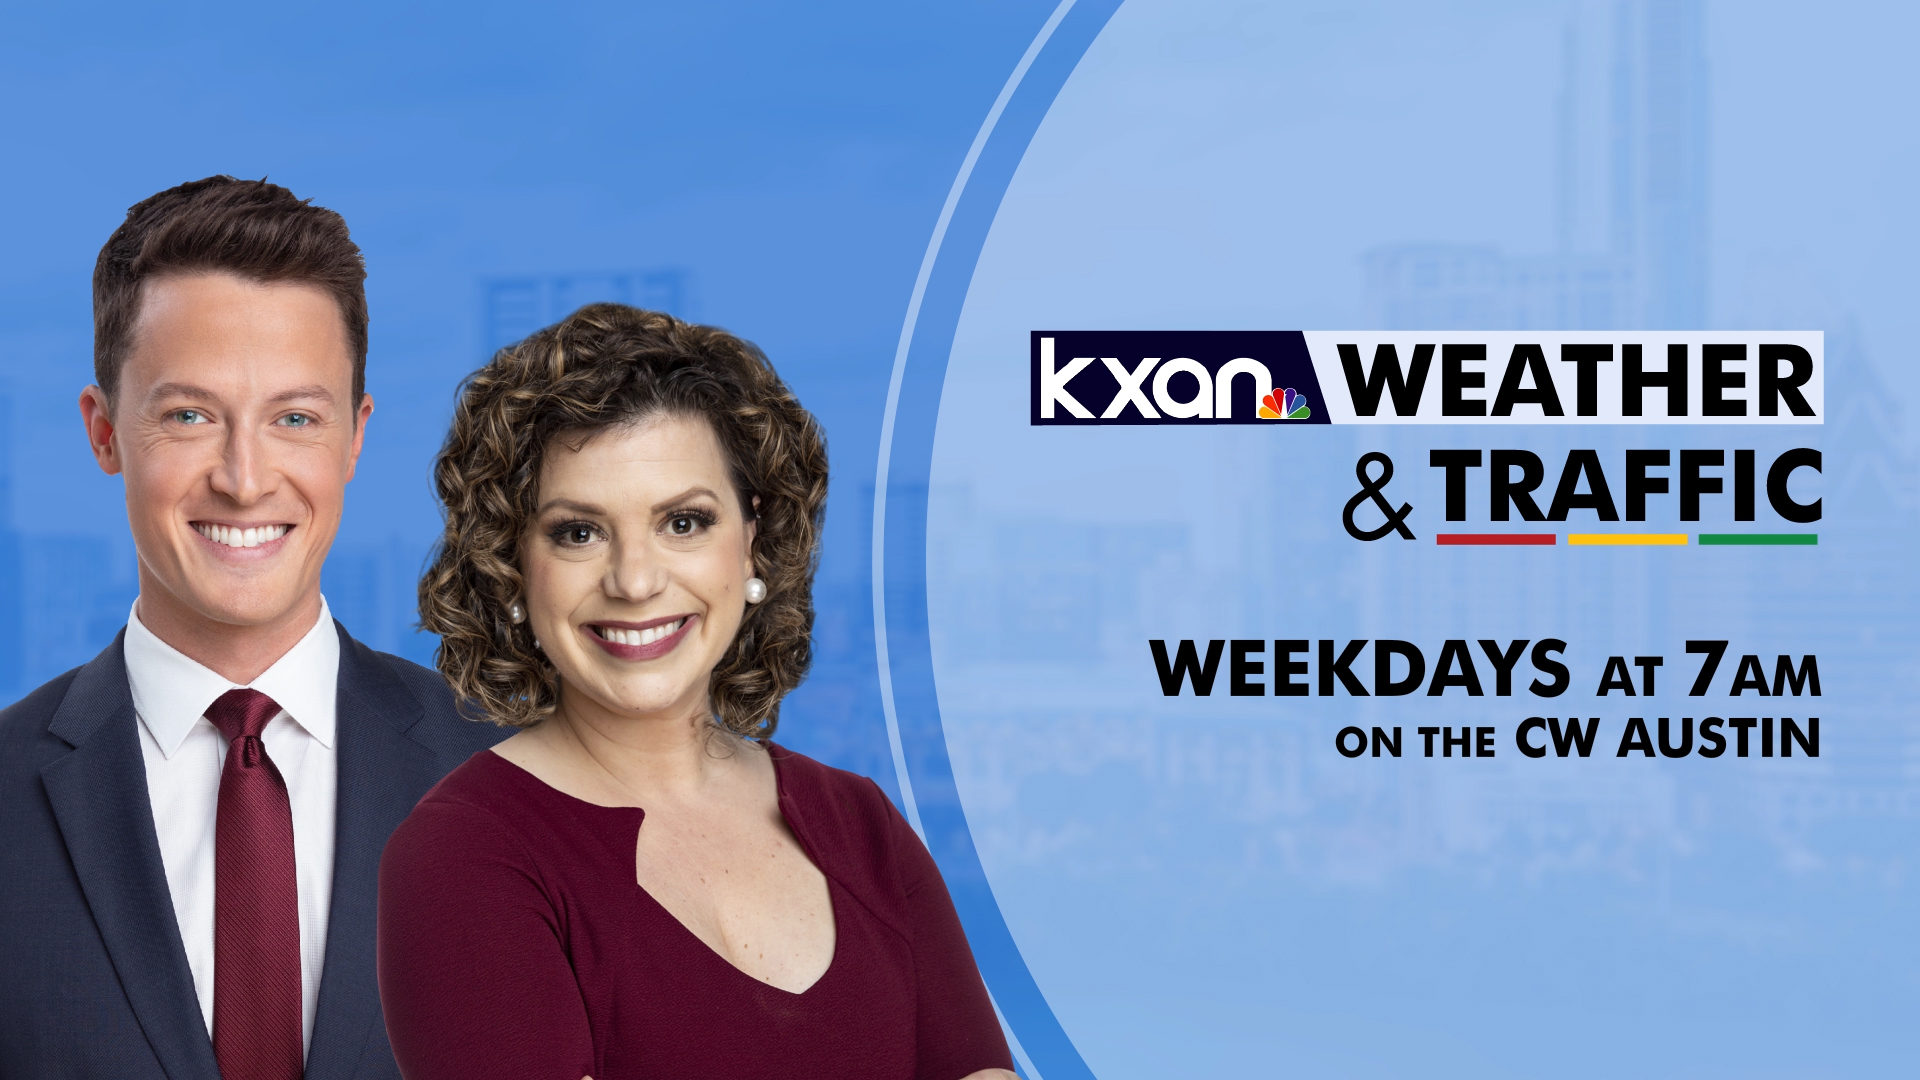 KXAN Weather & Traffic